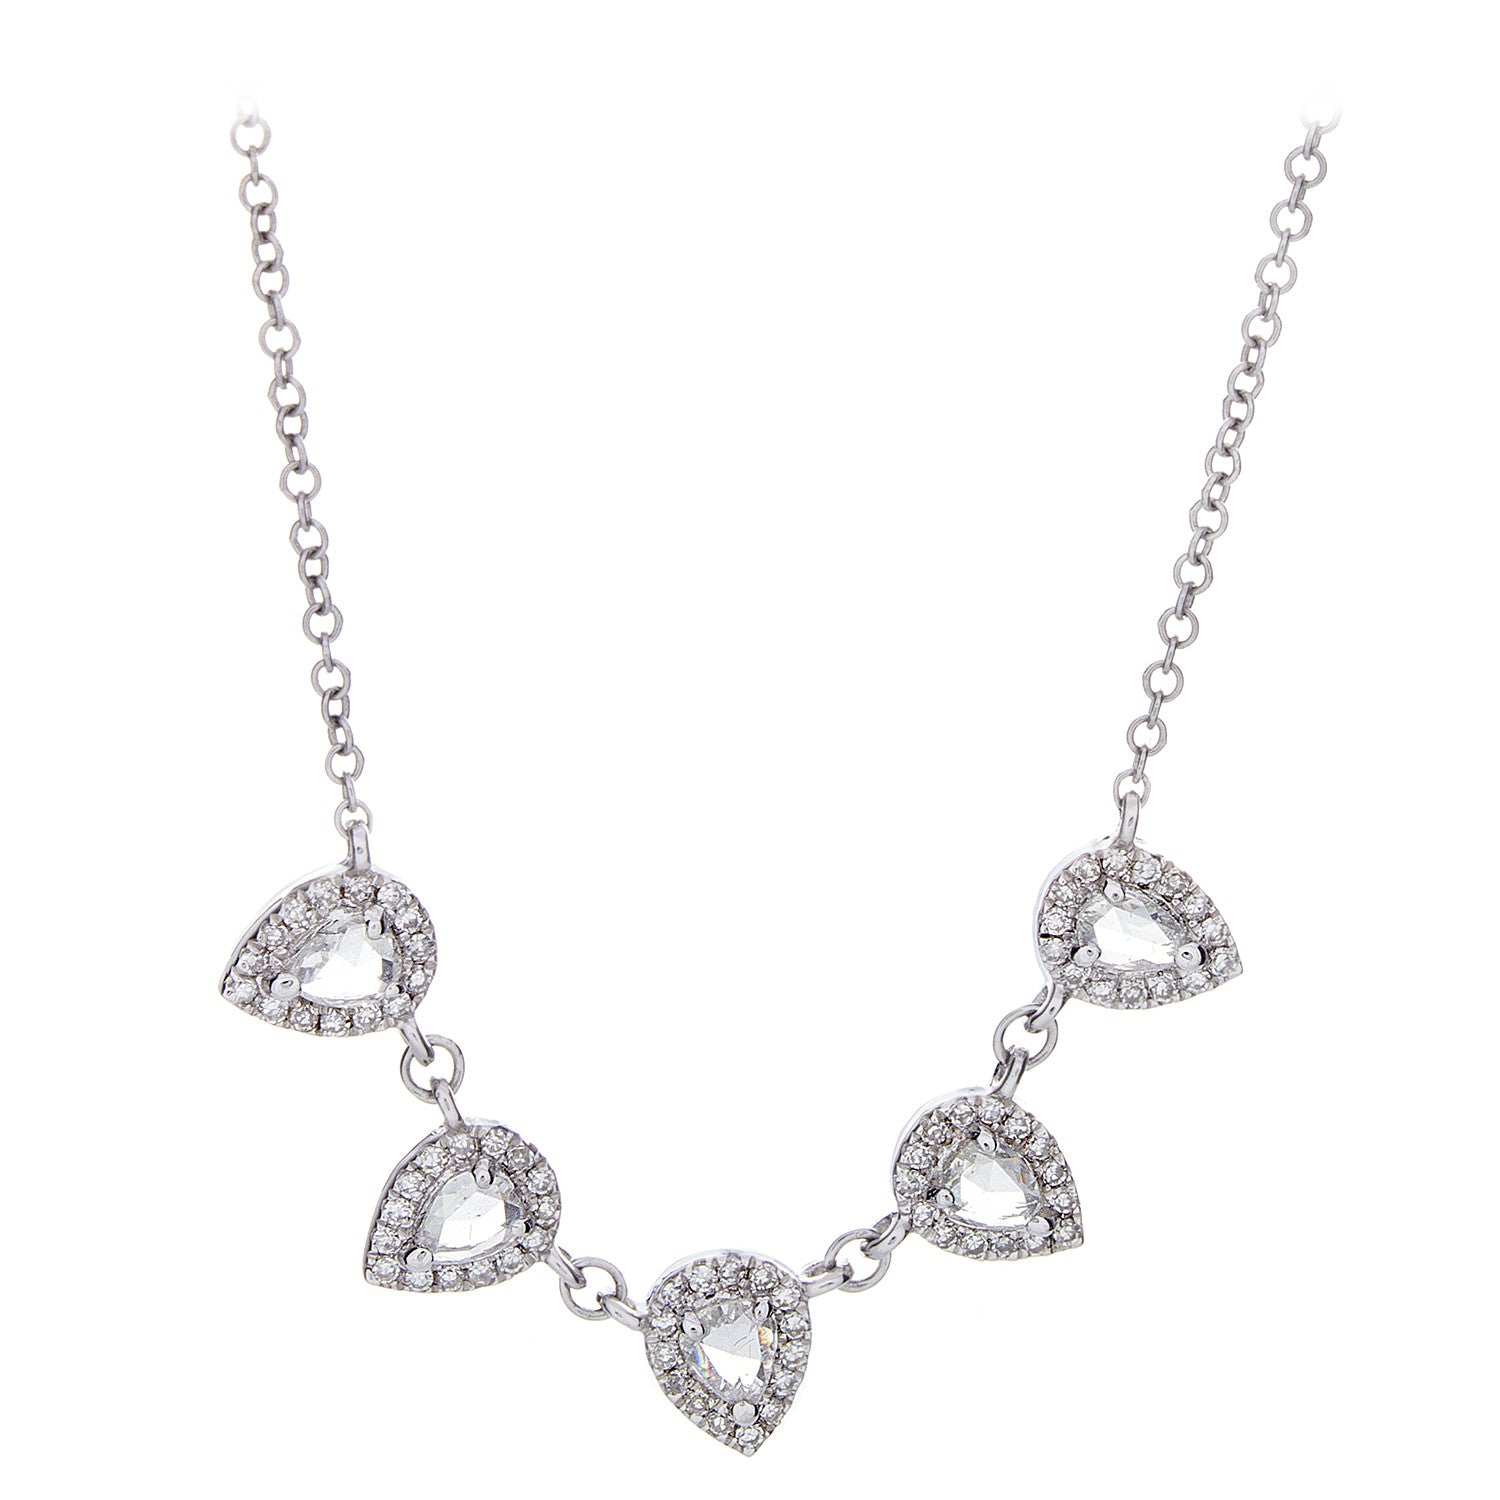 Rose Cut/Pave Diamond & 14K White Gold Necklace